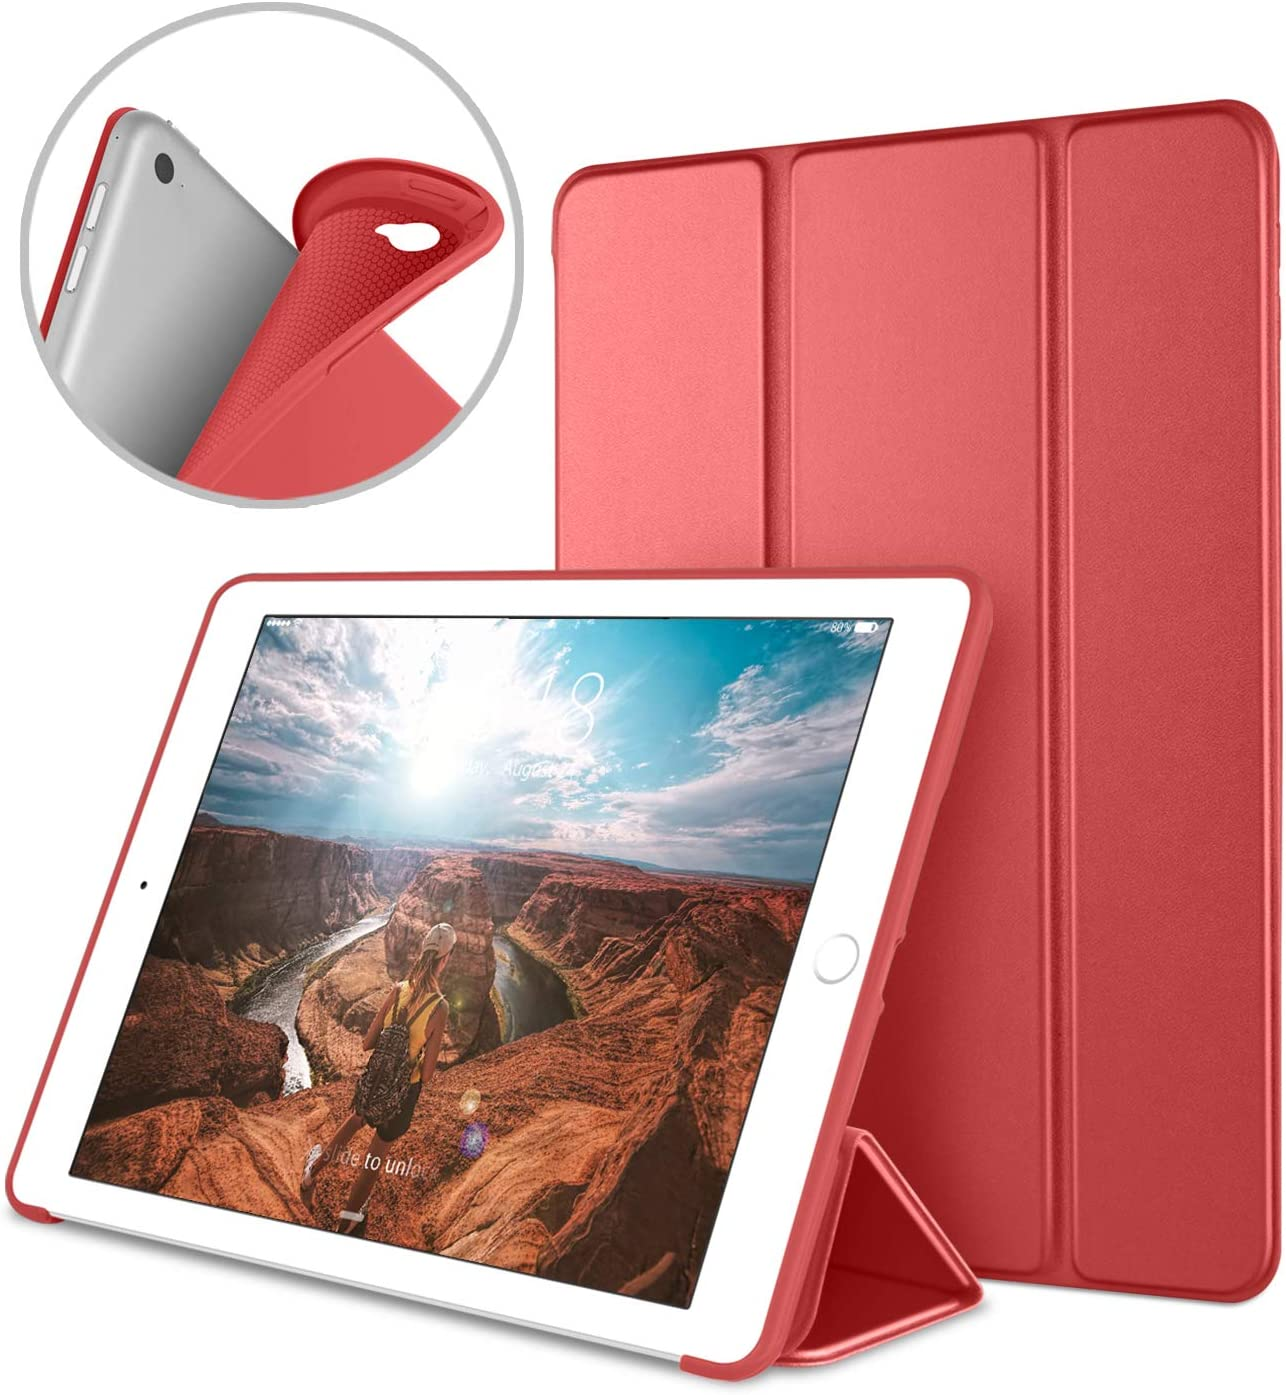 DTTO iPad Air 2 Case (2014 Released), Ultra Slim Lightweight Smart Case Trifold Stand with Flexible Soft TPU Back Cover for Apple iPad Air 2 (Model A1566/A1567), Red